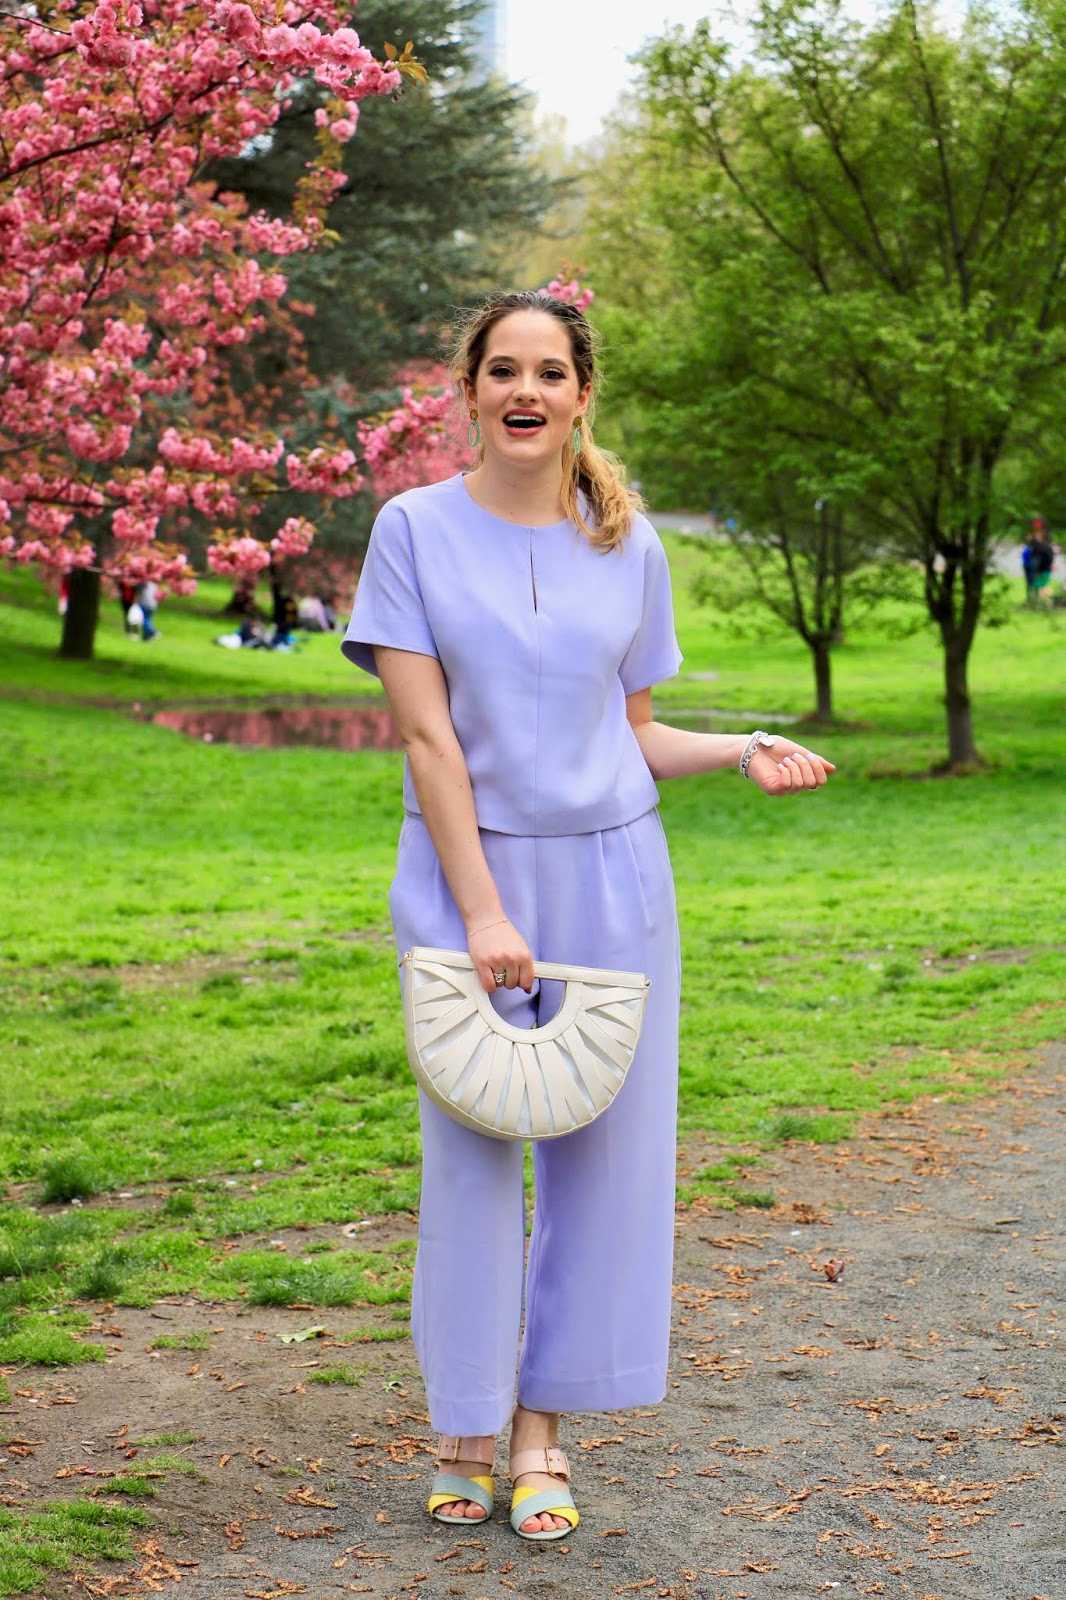 Nyc fashion blogger Kathleen Harper's spring 2019 pics in Central Park